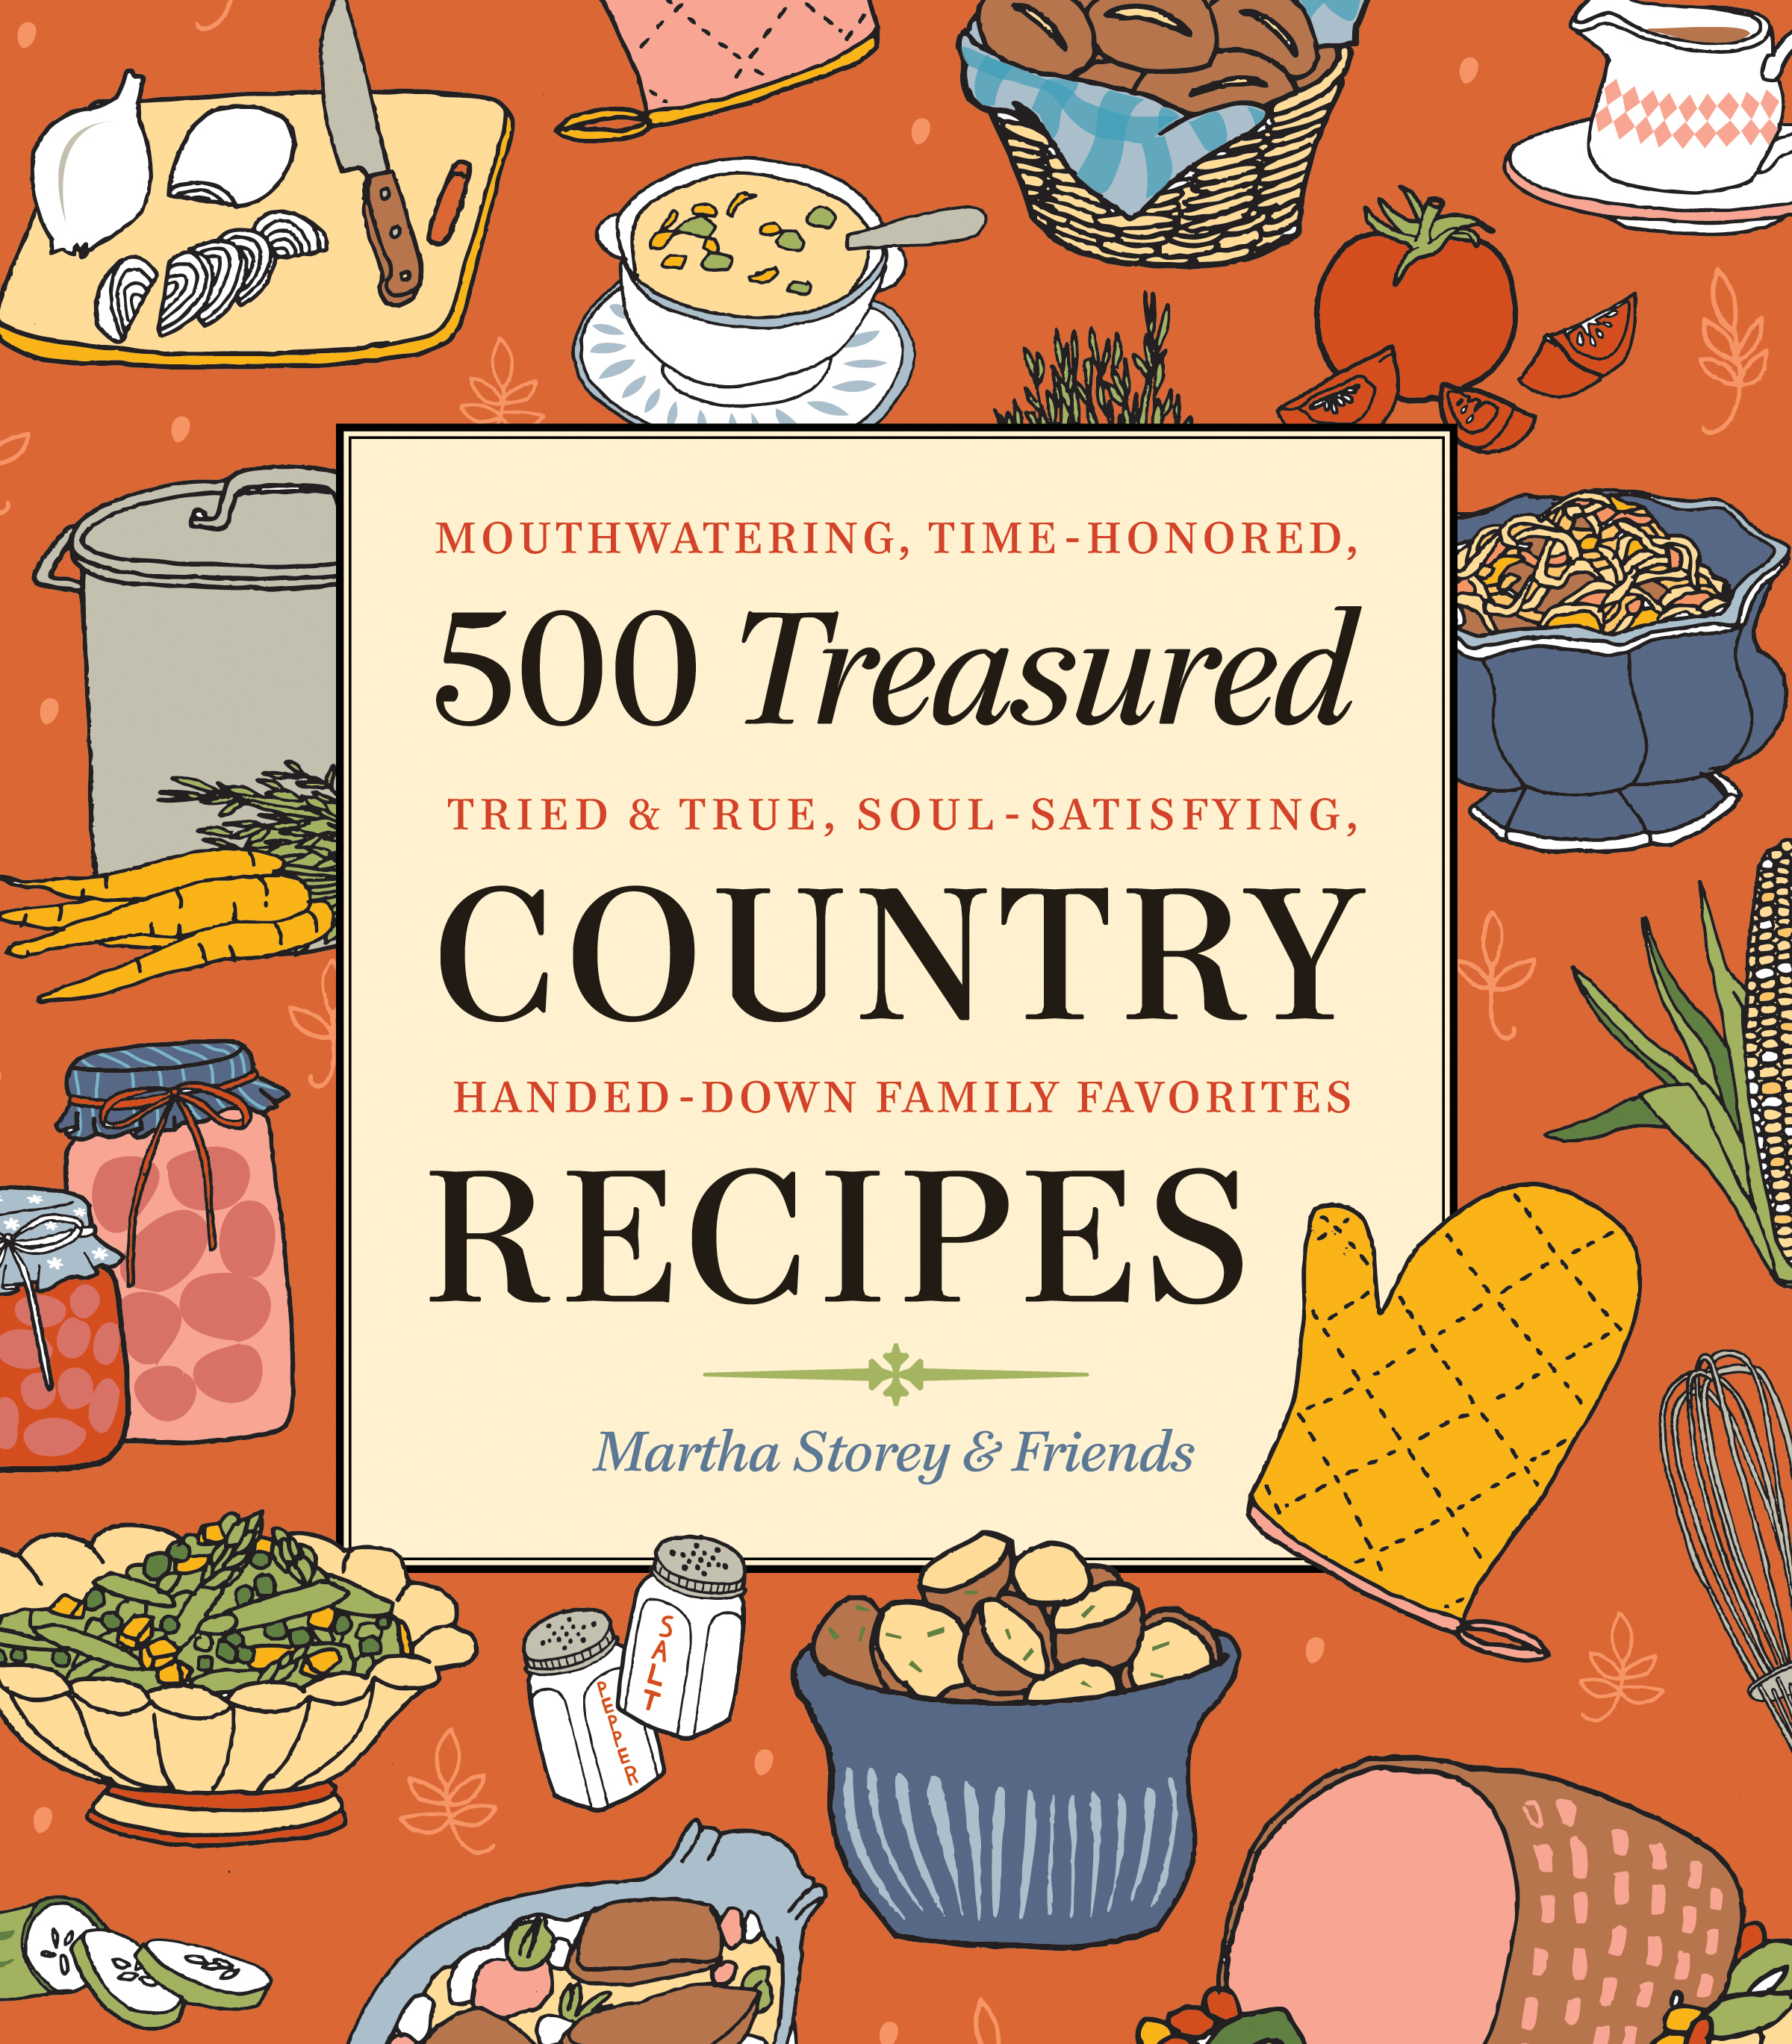 500 Treasured Country Recipes from Martha Storey and Friends Mouthwatering, Time-Honored, Tried-And-True, Handed-Down, Soul-Satisfying Dishes - Martha Storey